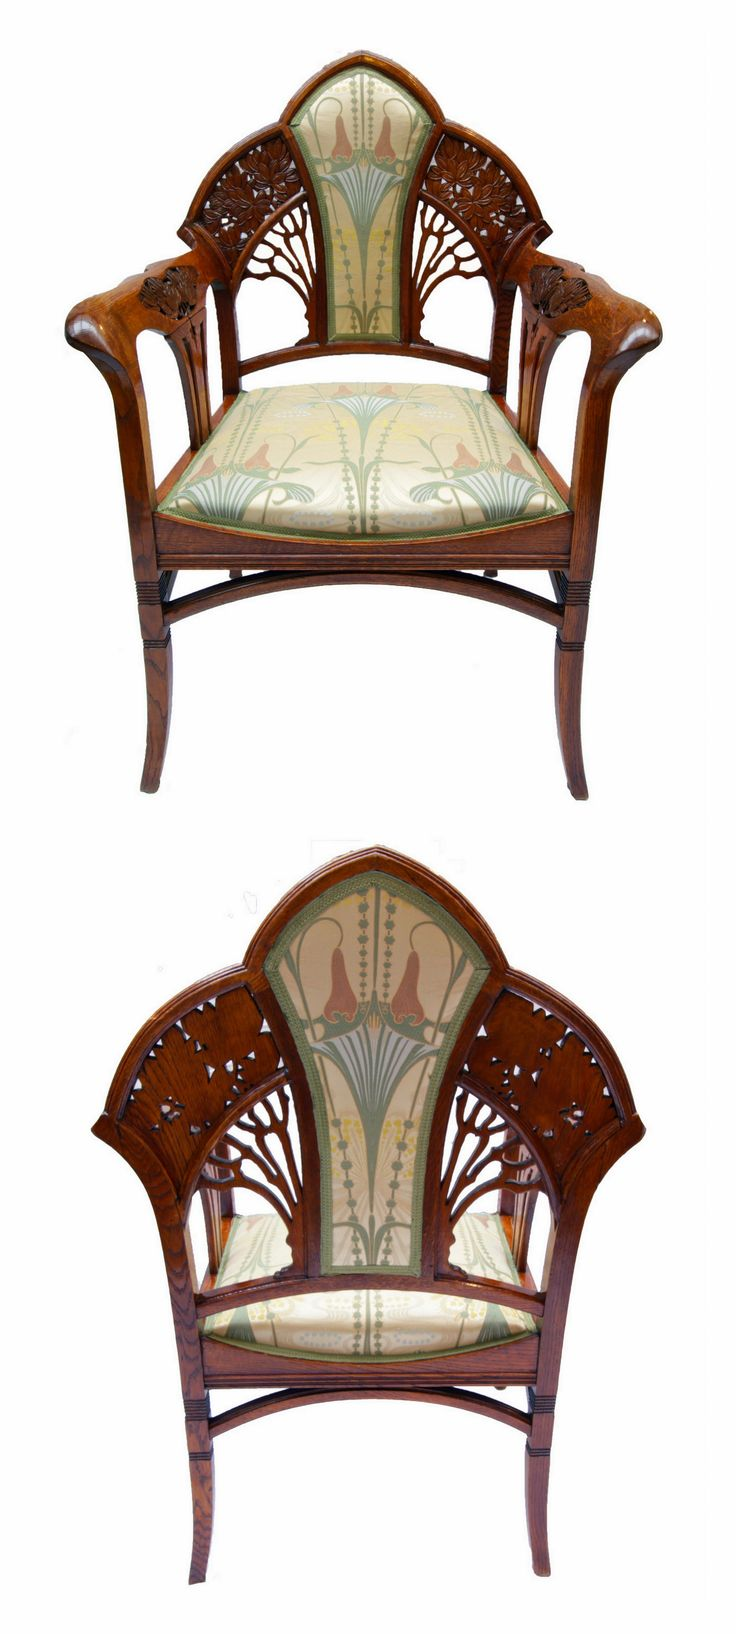 610 Best Art Nouveau Furniture Furnishings Images On Pinterest Art Nouveau Furniture Art